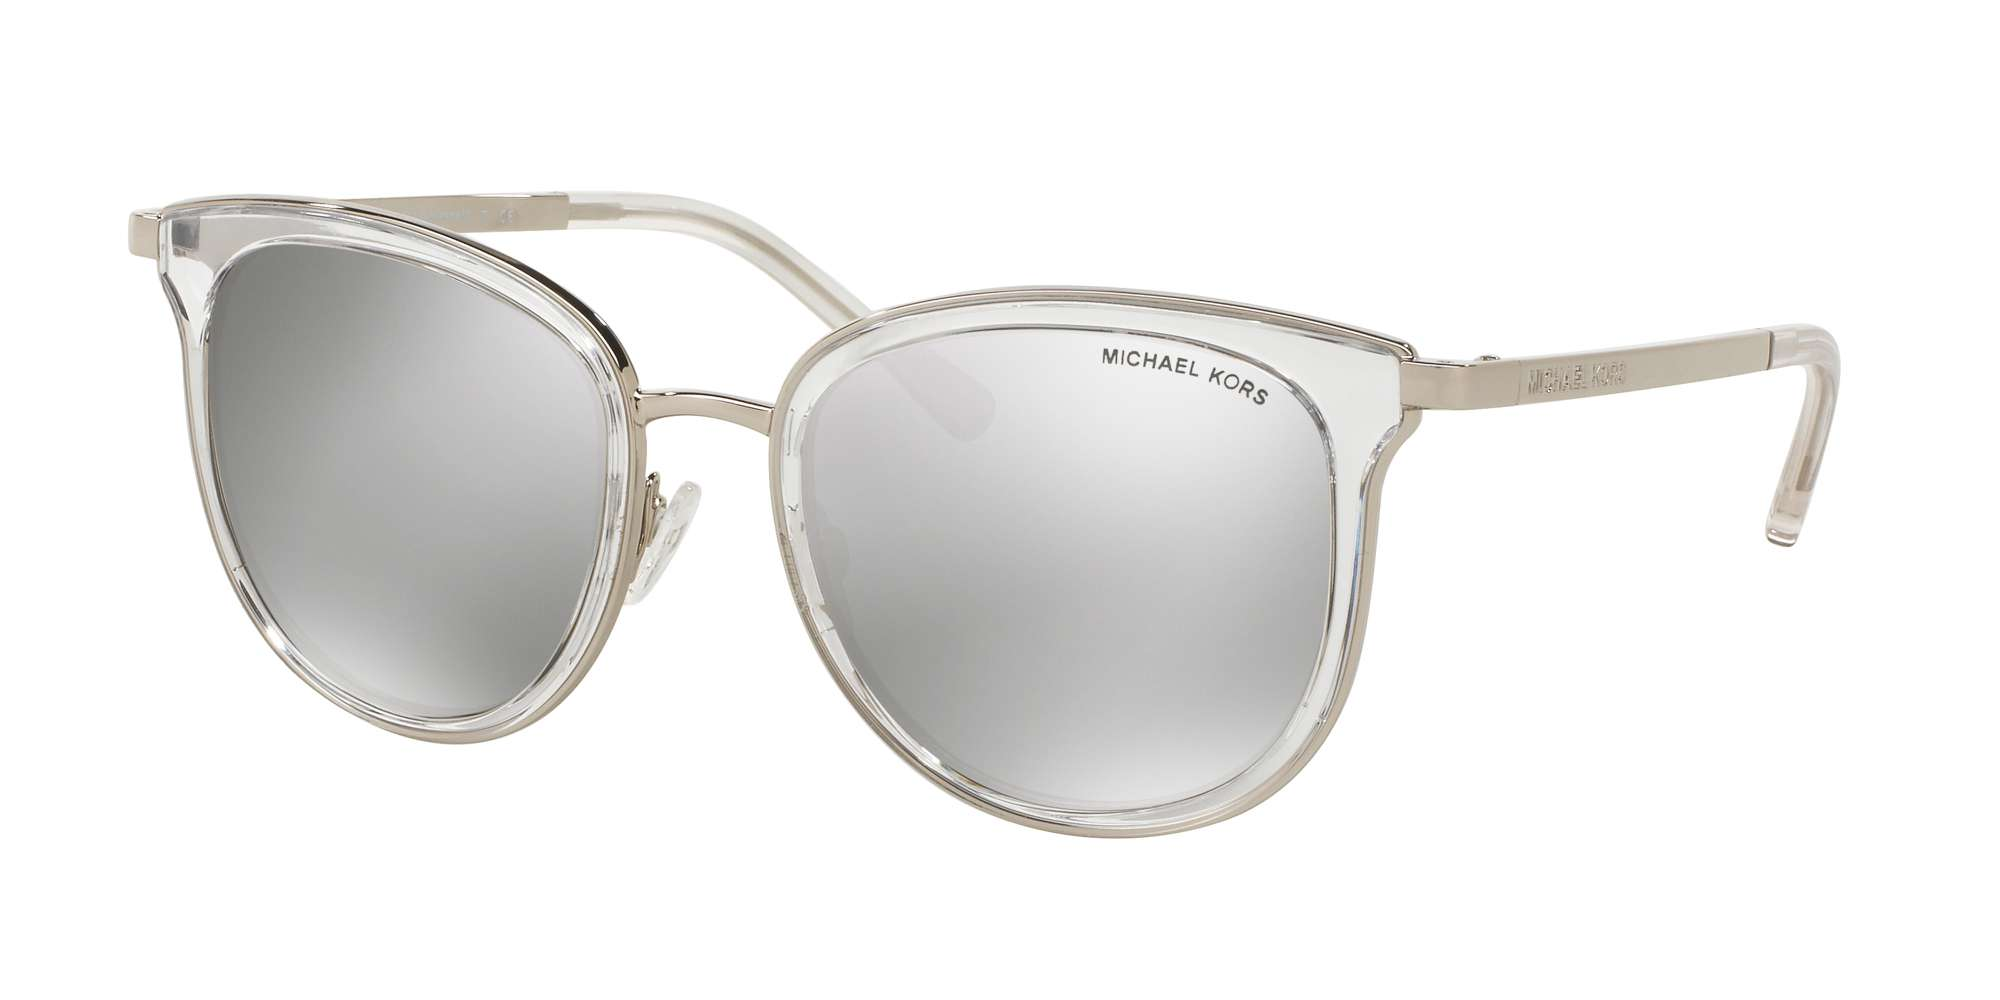 CLEAR/SILVER / SILVER MIRROR lenses